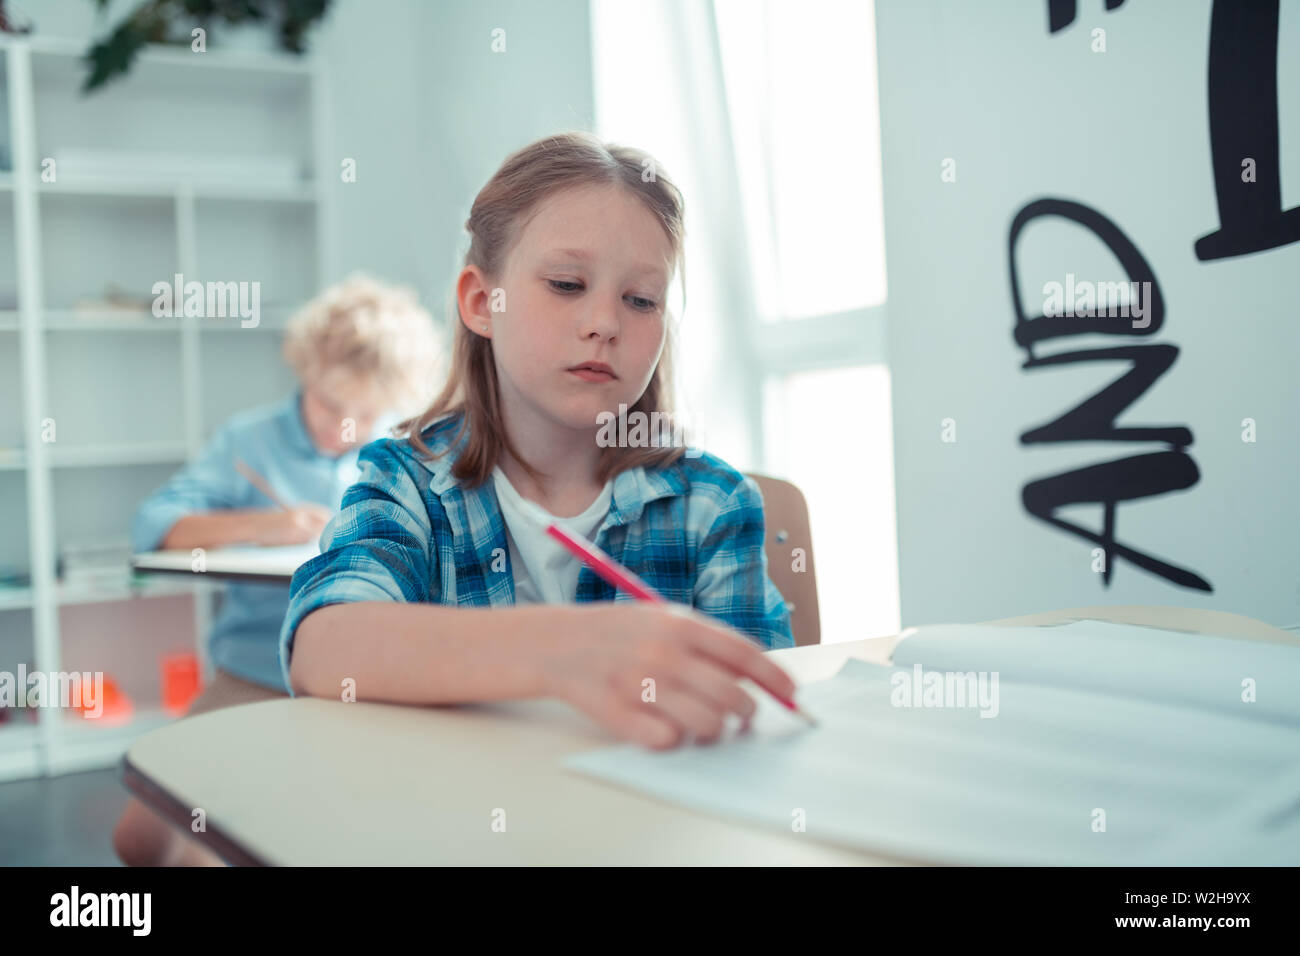 Tired school girl writing her maths test. Stock Photo